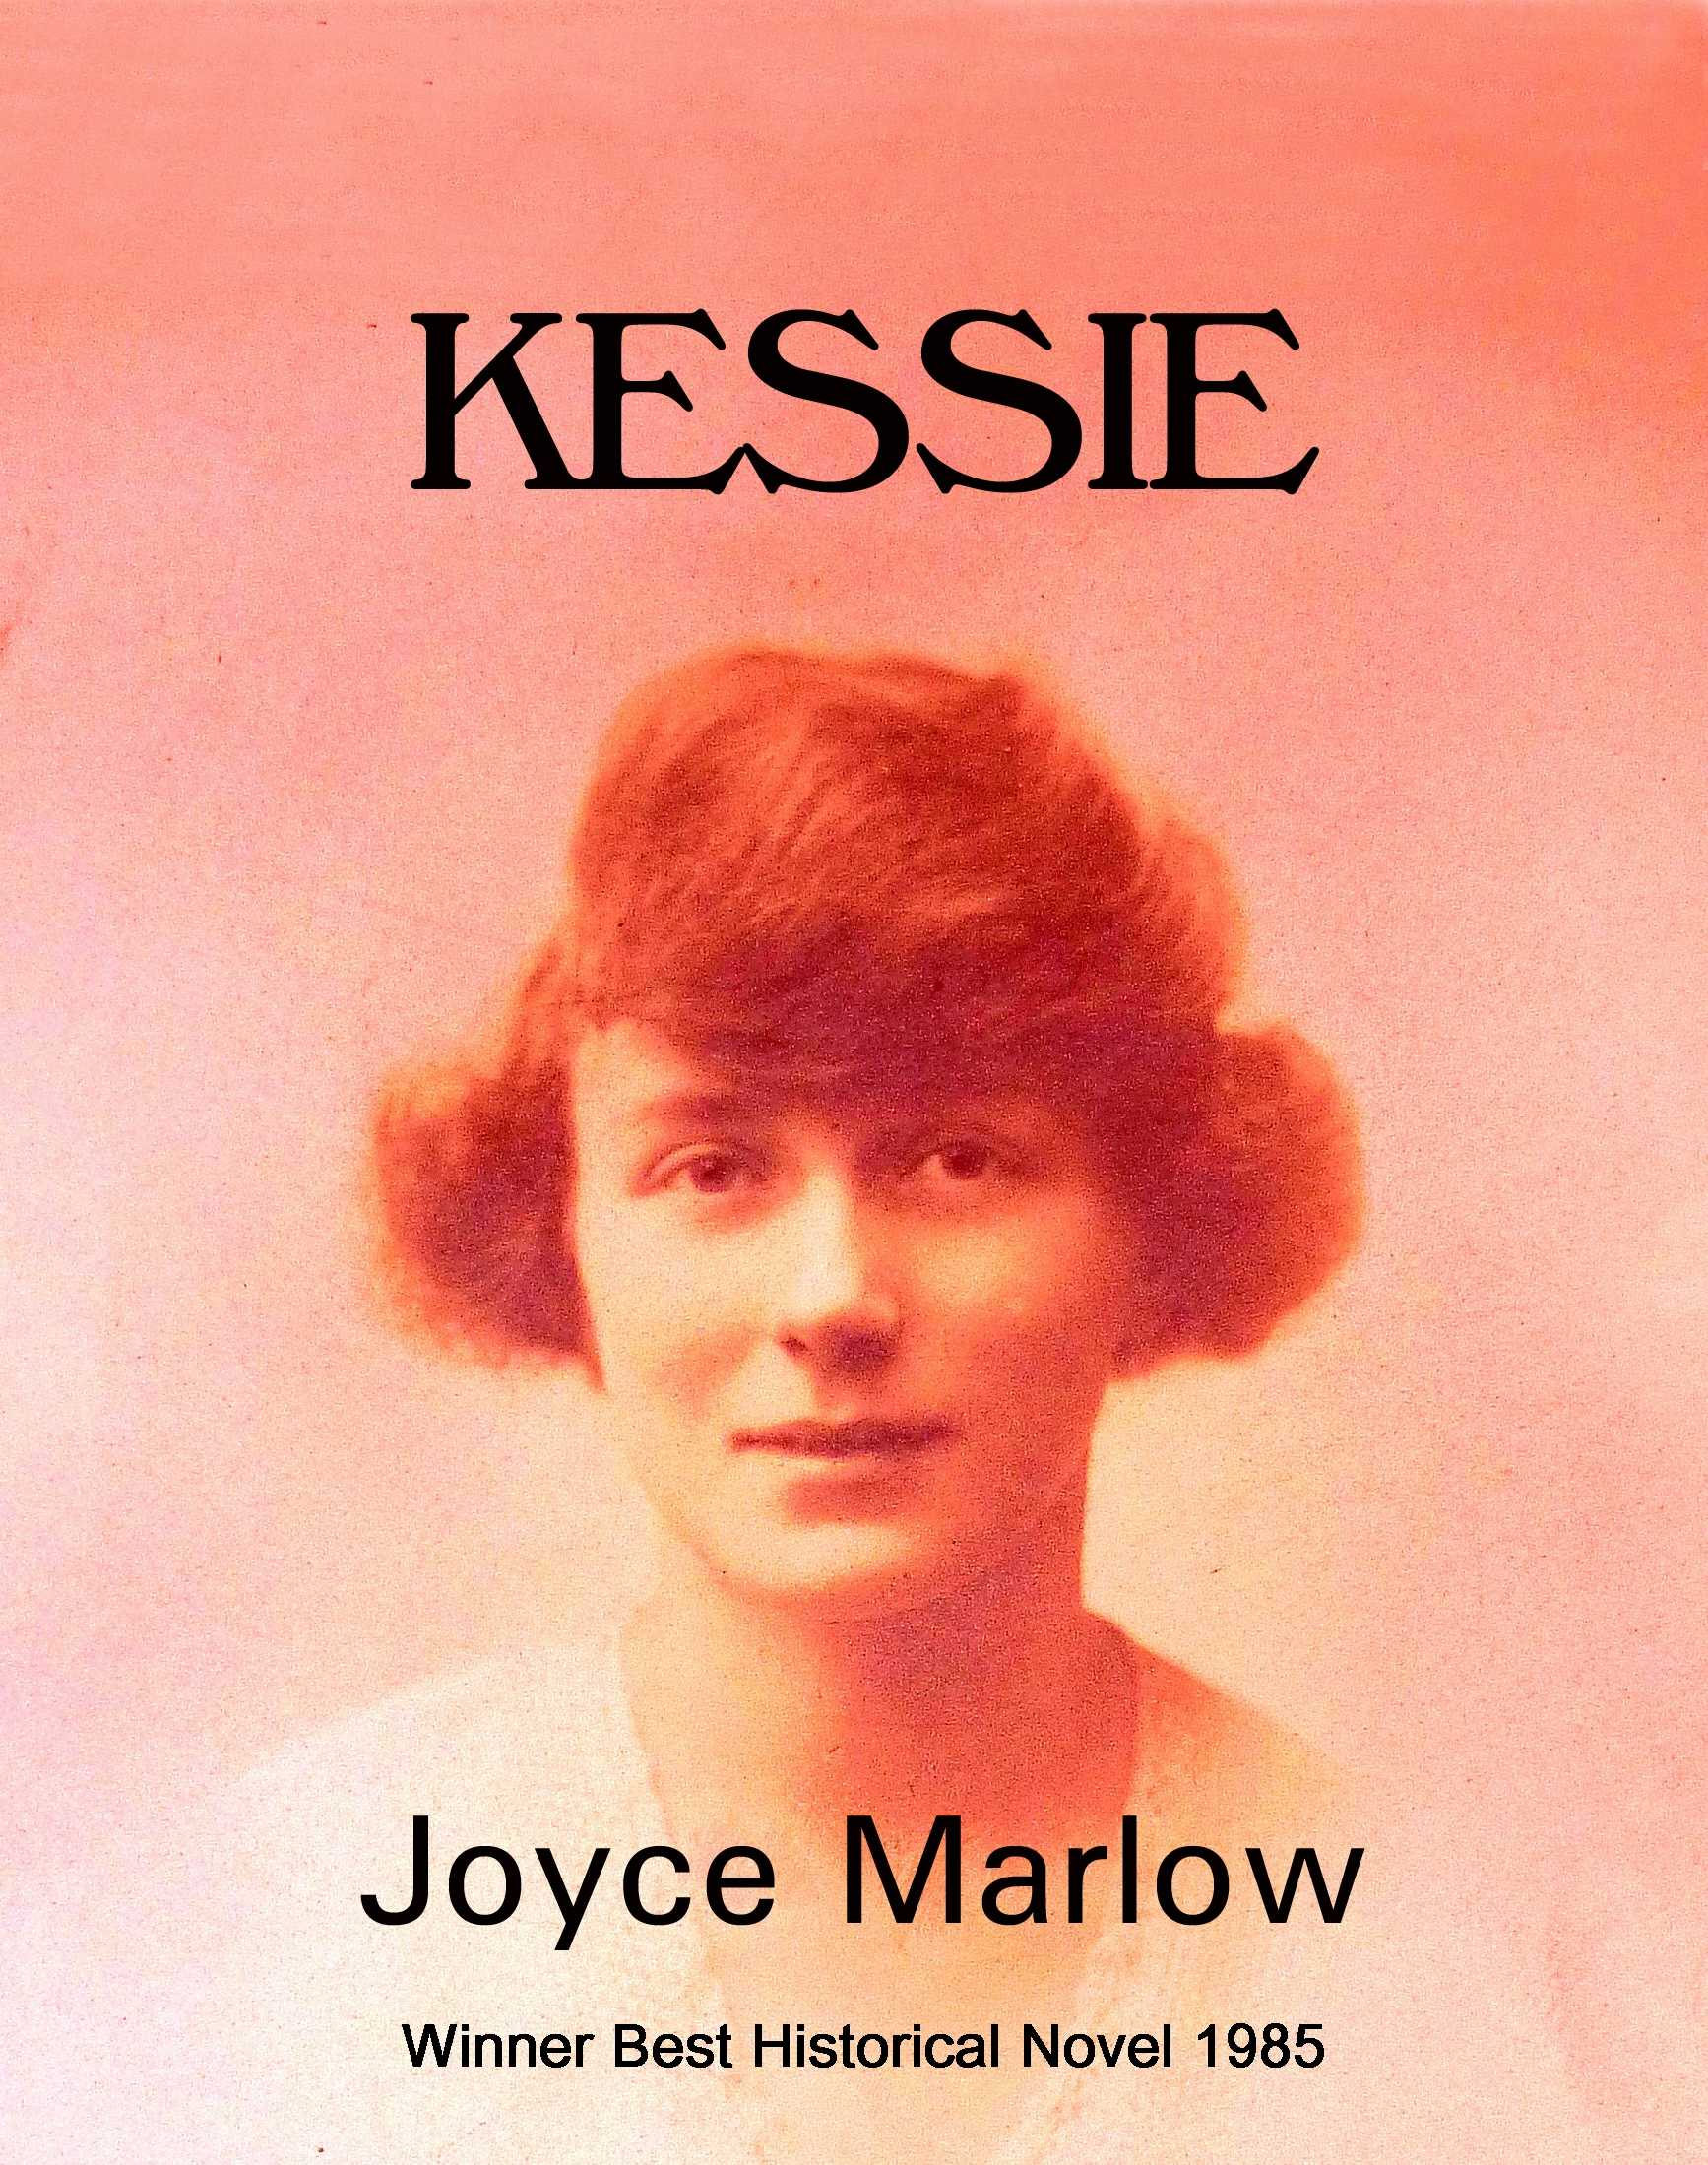 Kessie Book Cover Image